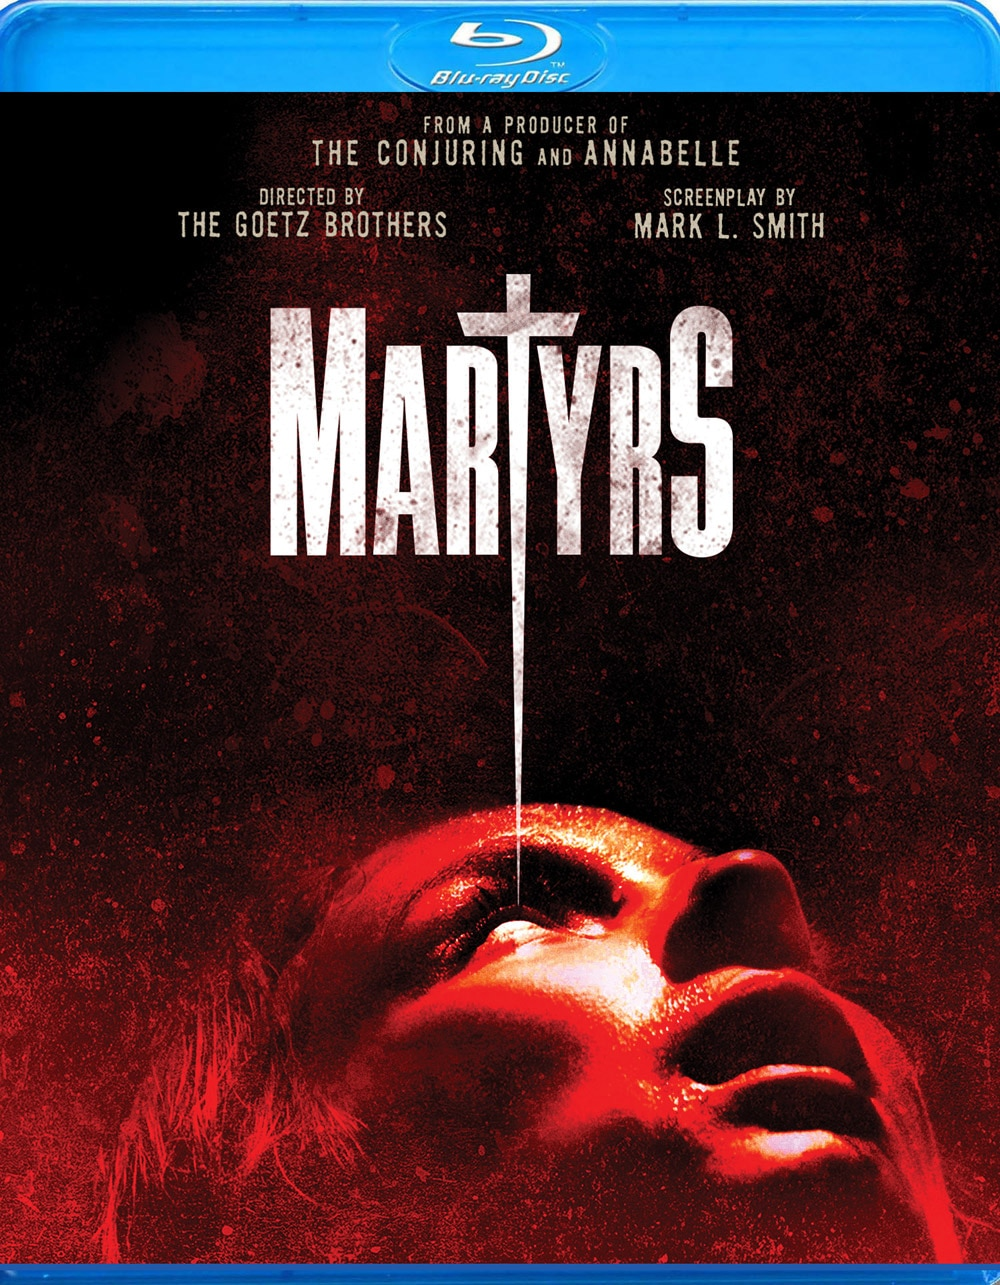 MARTYRS BD - Martyrs Trailer Deals Out Unspeakable Pain